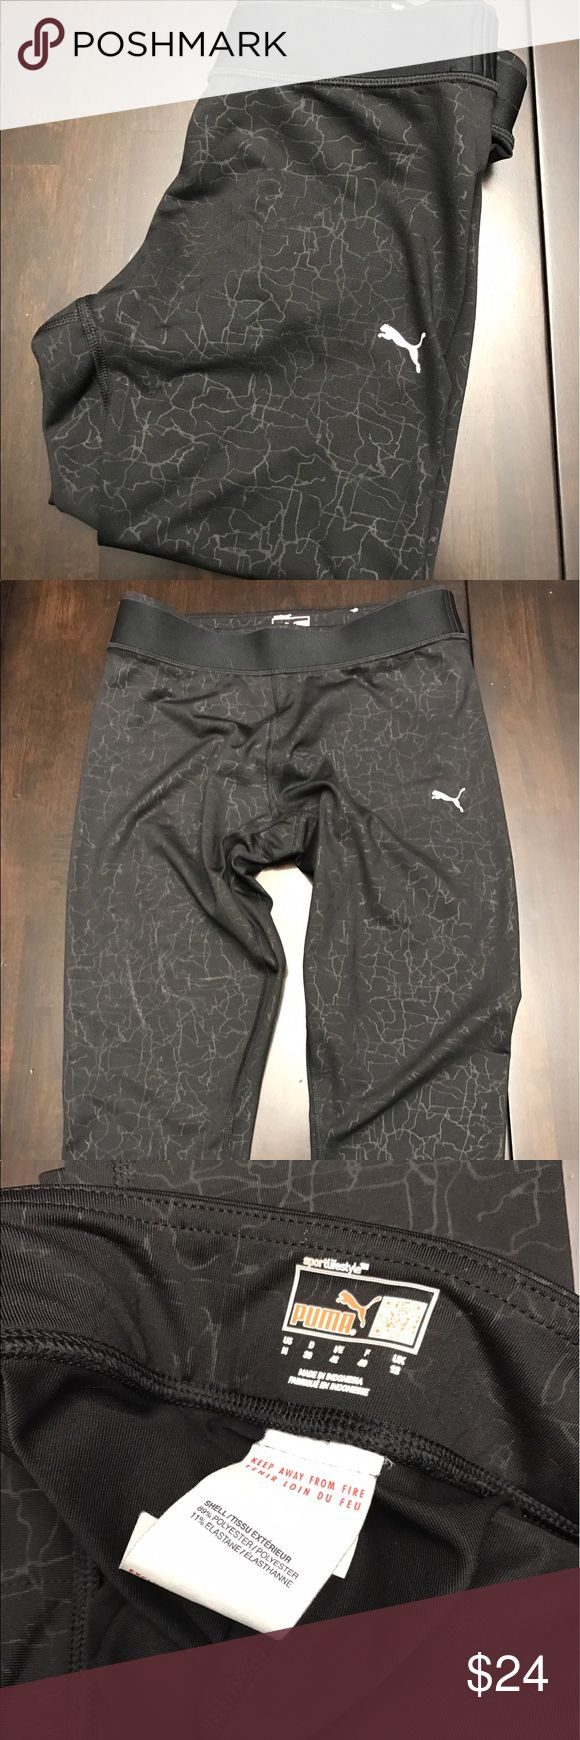 Puma Sport Workout Capri Leggings Puma Sport/Lifestyle Capris.  These capris are perfect for a working out or just wearing around the house.  The strong elastic band keeps them up and in place.  They are black with a crackle print.  Size Medium.  Capri Style Legging. Puma Pants Capris